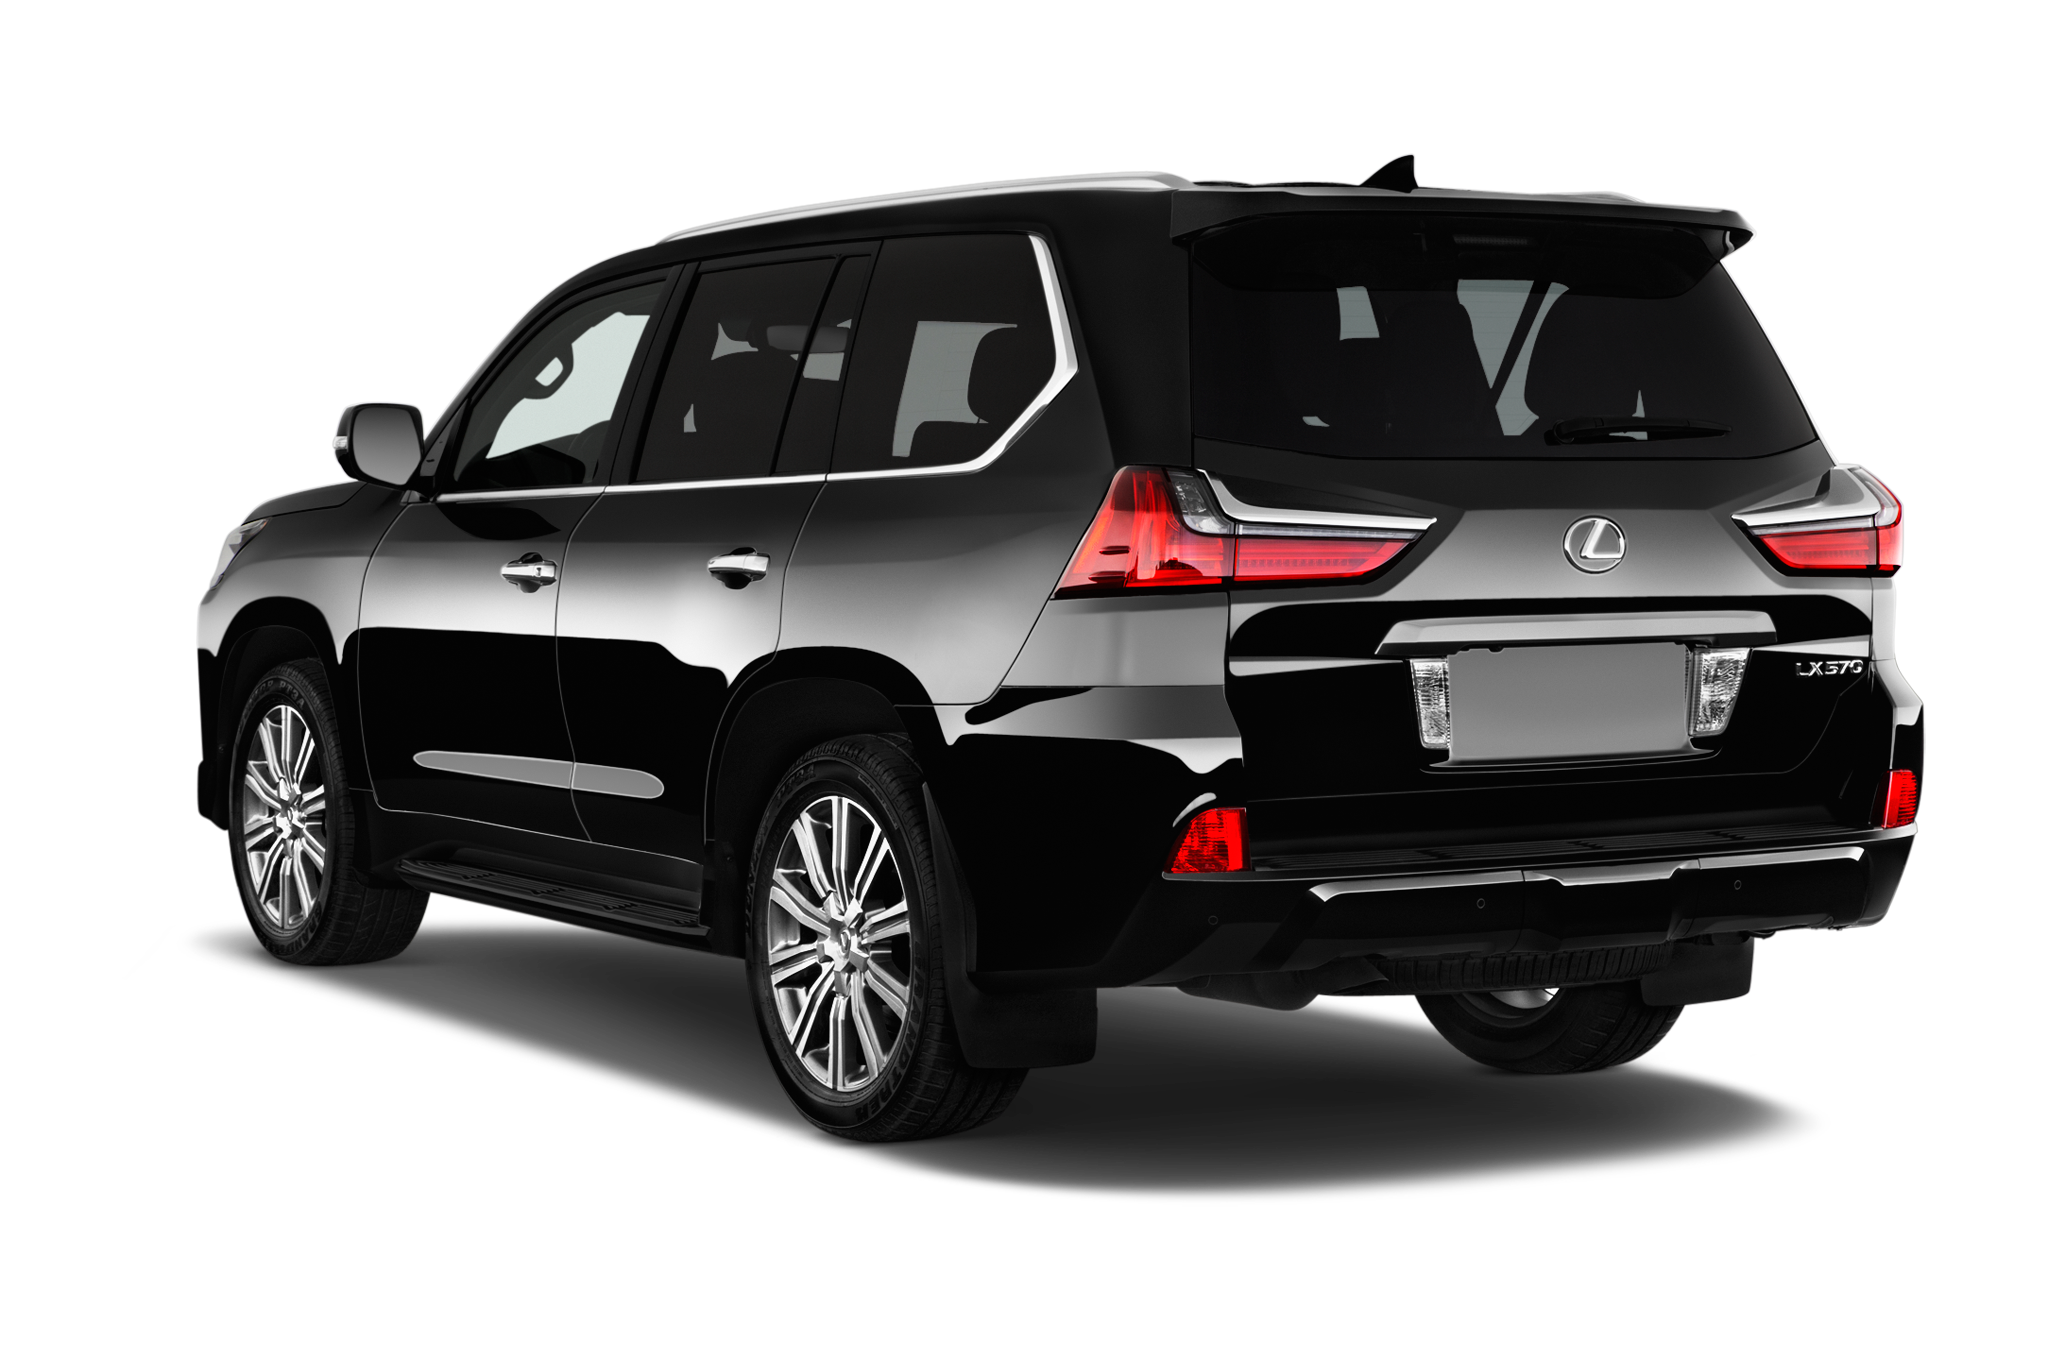 2017 lexus lx reviews ratings prices consumer reports. Black Bedroom Furniture Sets. Home Design Ideas